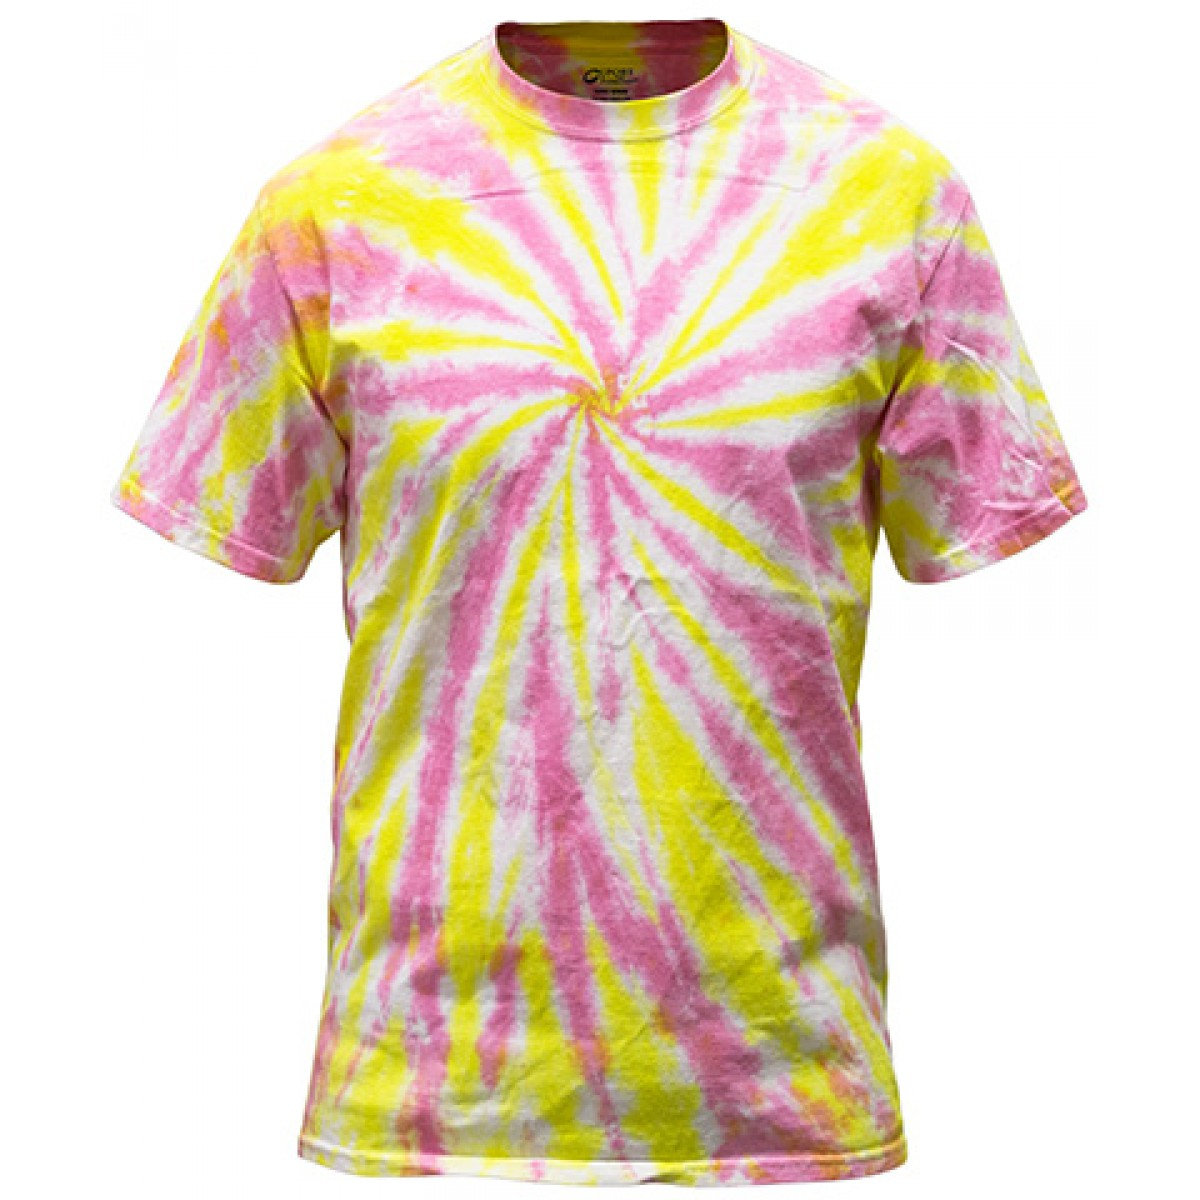 Multi-Color Tie-Dye Tee -Pink/Yellow-L